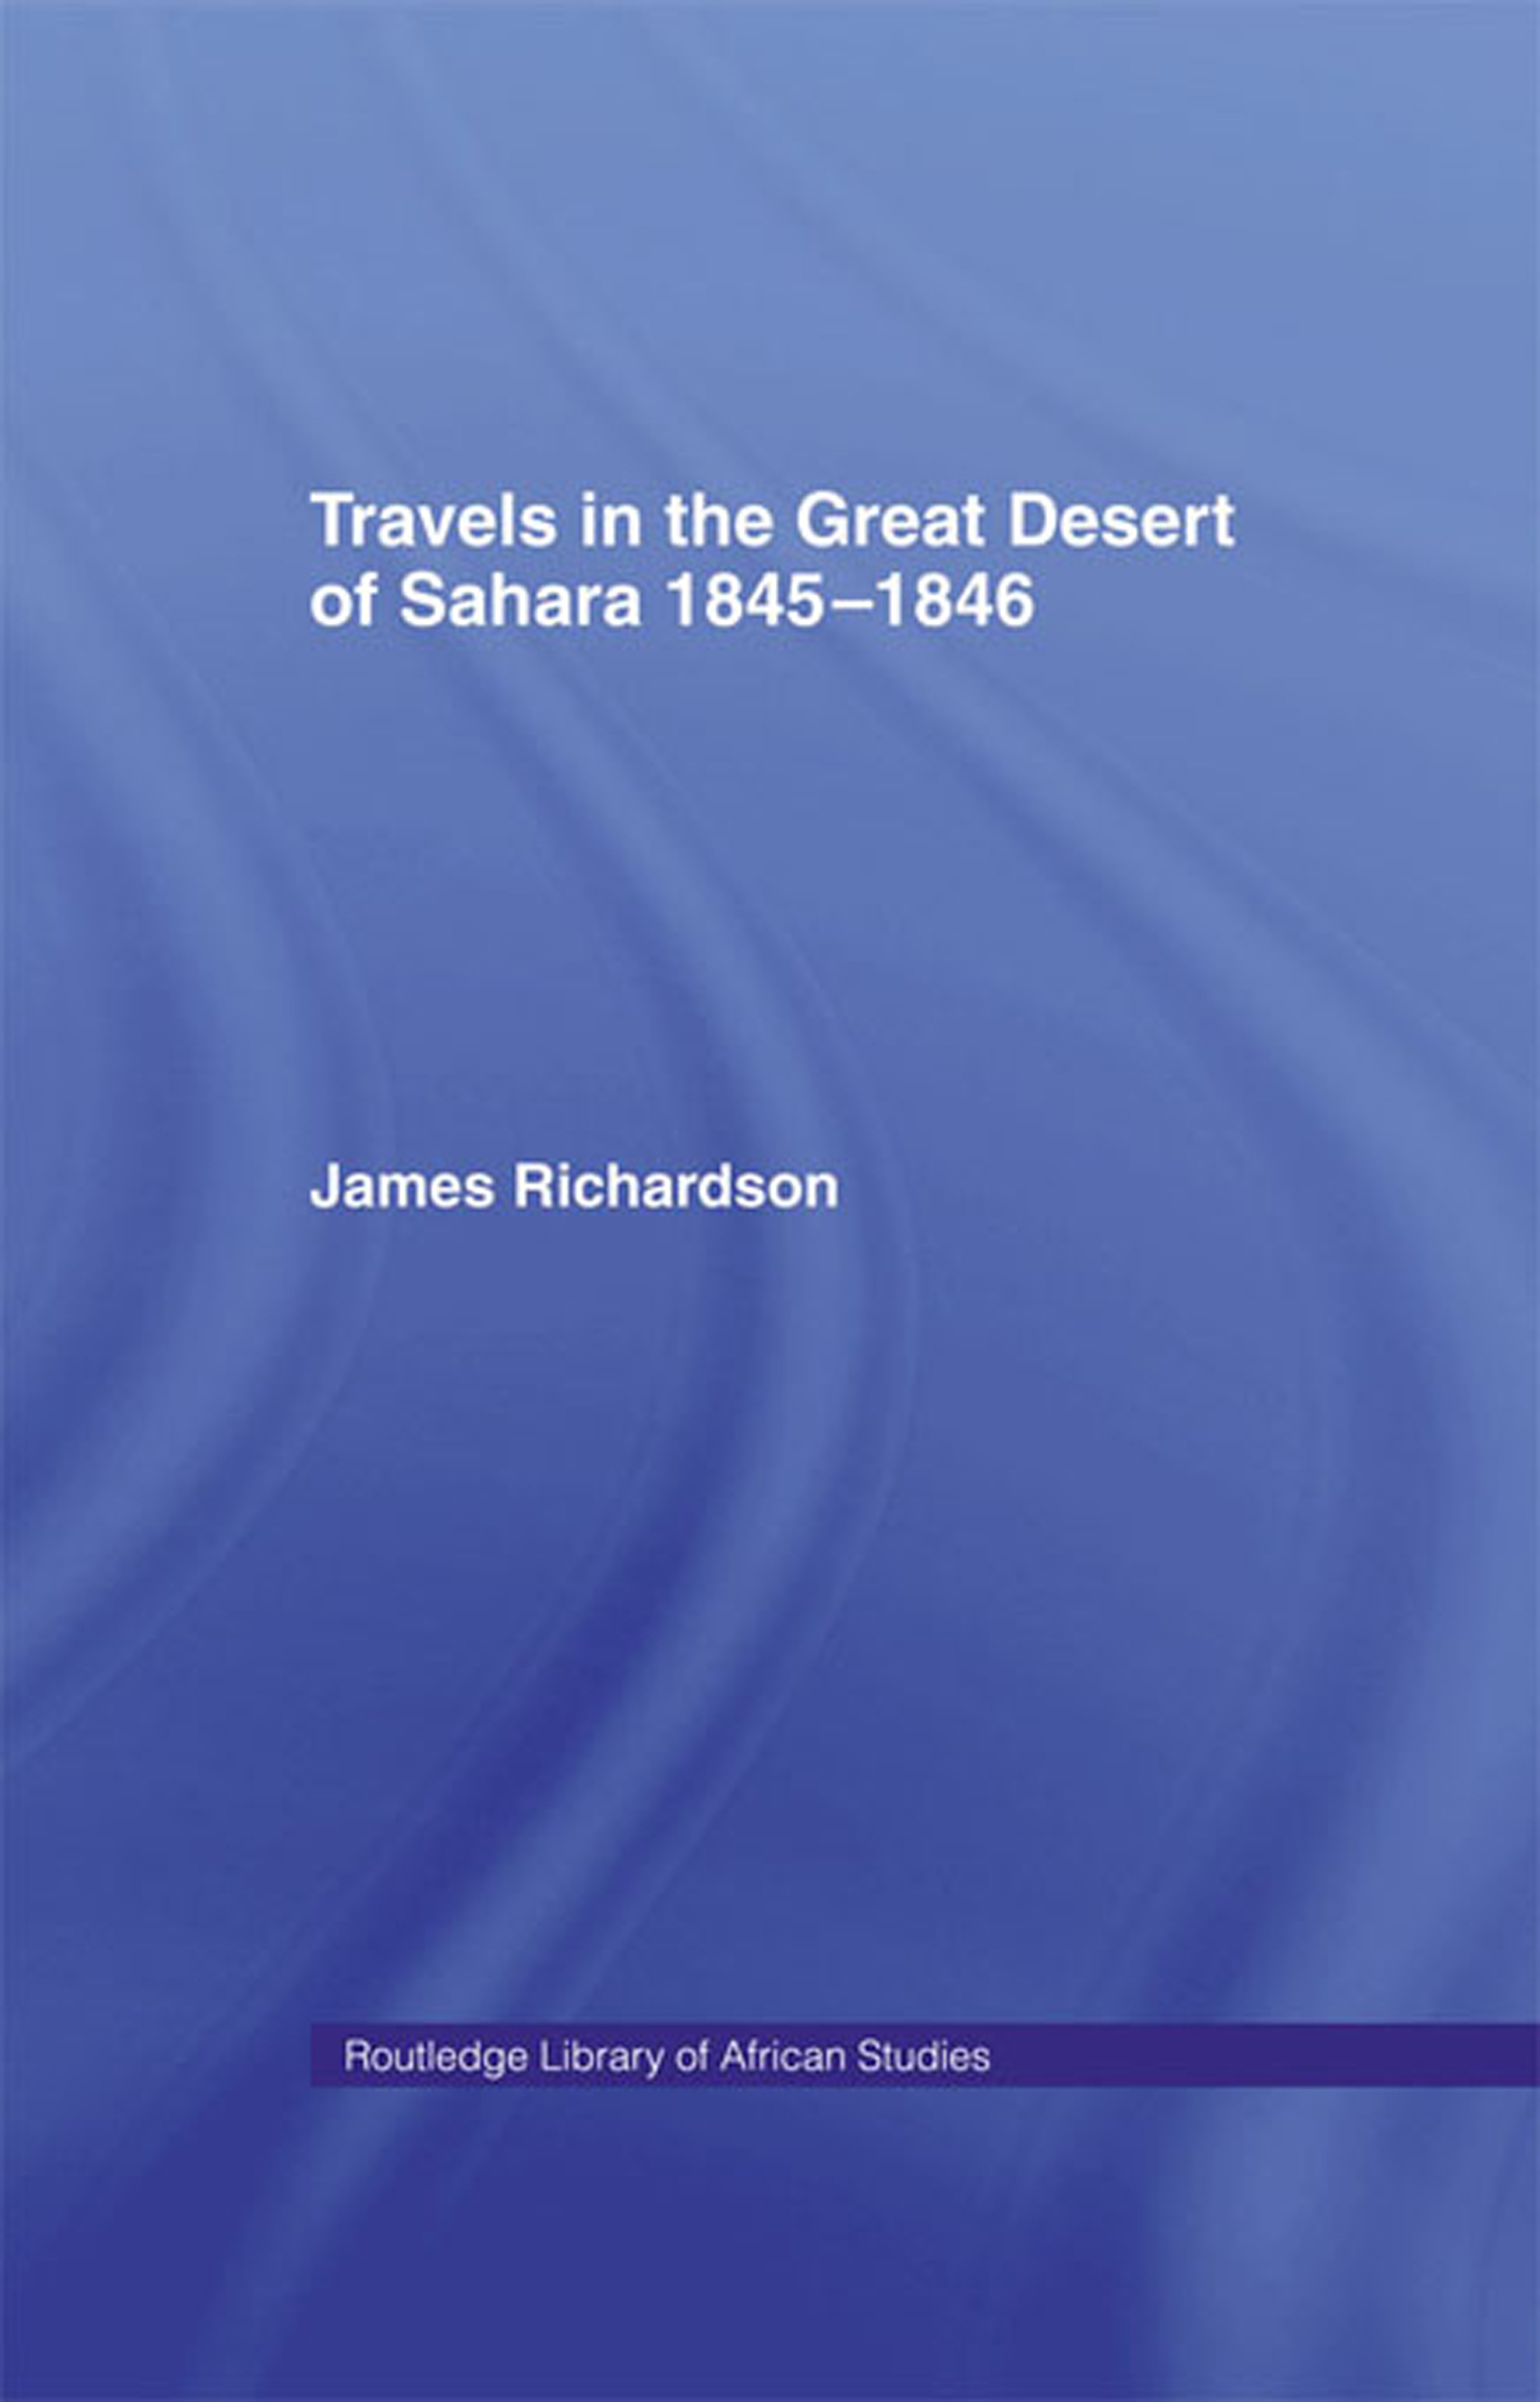 Travels in the Great Desert